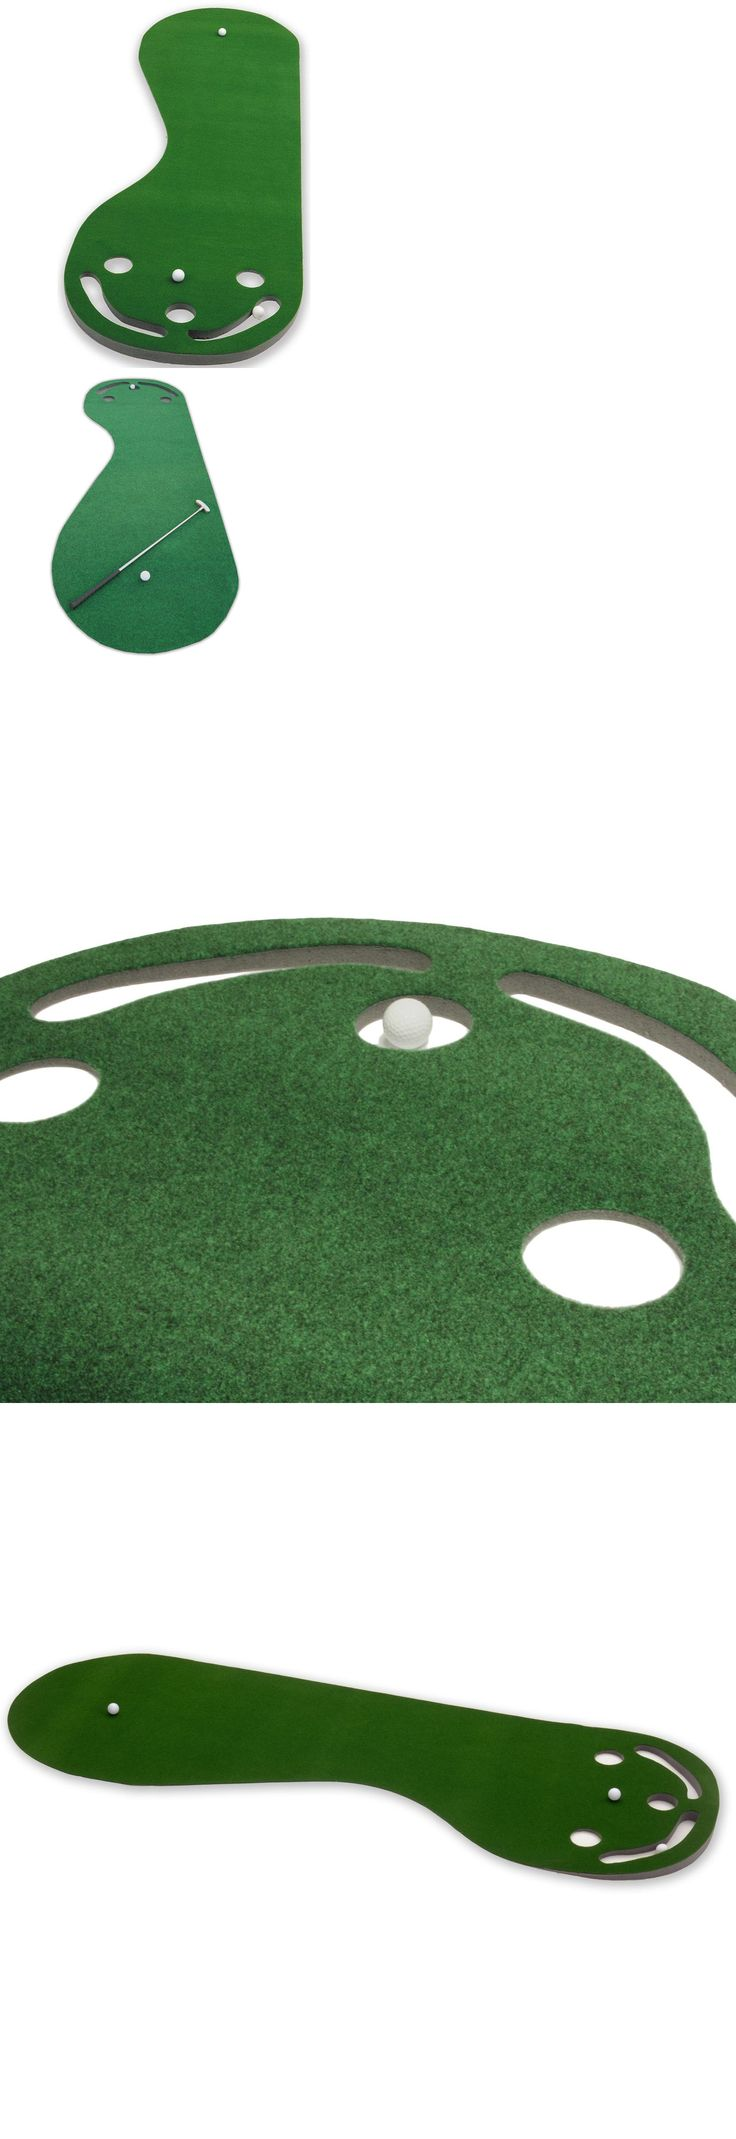 Nets Cages and Mats 50876: Practice Putting Green Par 3 Golf Mat Indoor Aid Training Equipment Putt Turf -> BUY IT NOW ONLY: $35.99 on eBay!